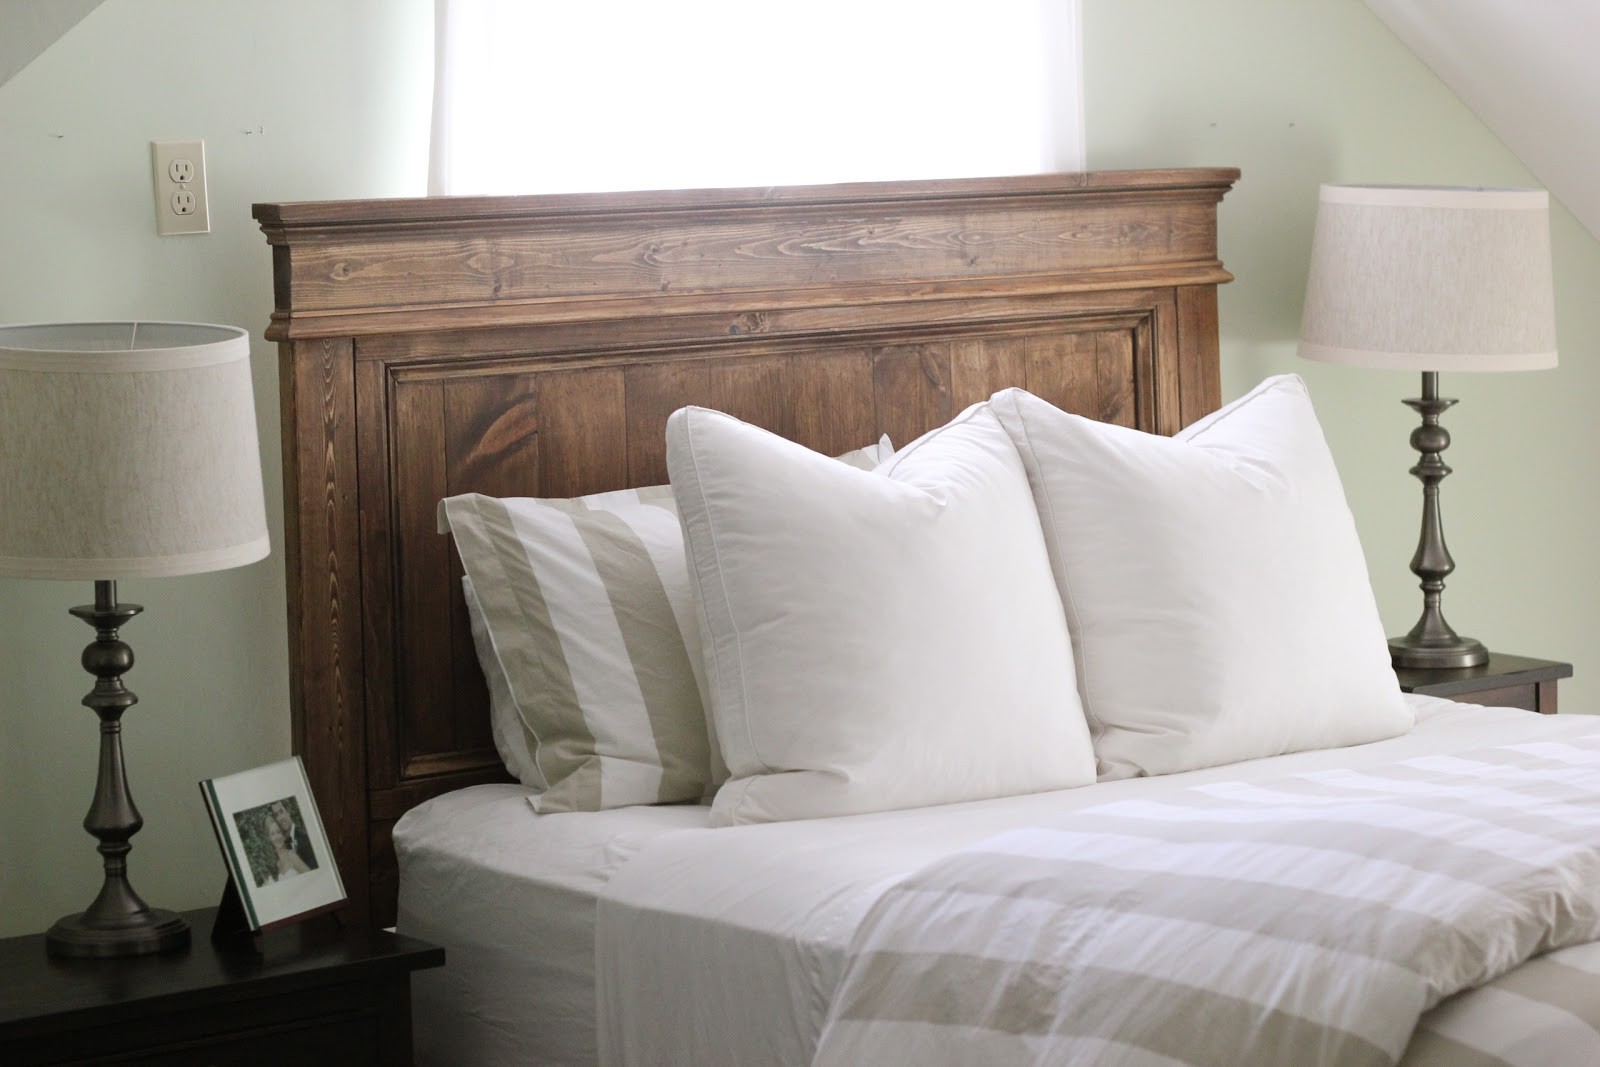 Best ideas about DIY Bed Headboards . Save or Pin Jenny Steffens Hobick We built a bed DIY Wooden Headboard Now.